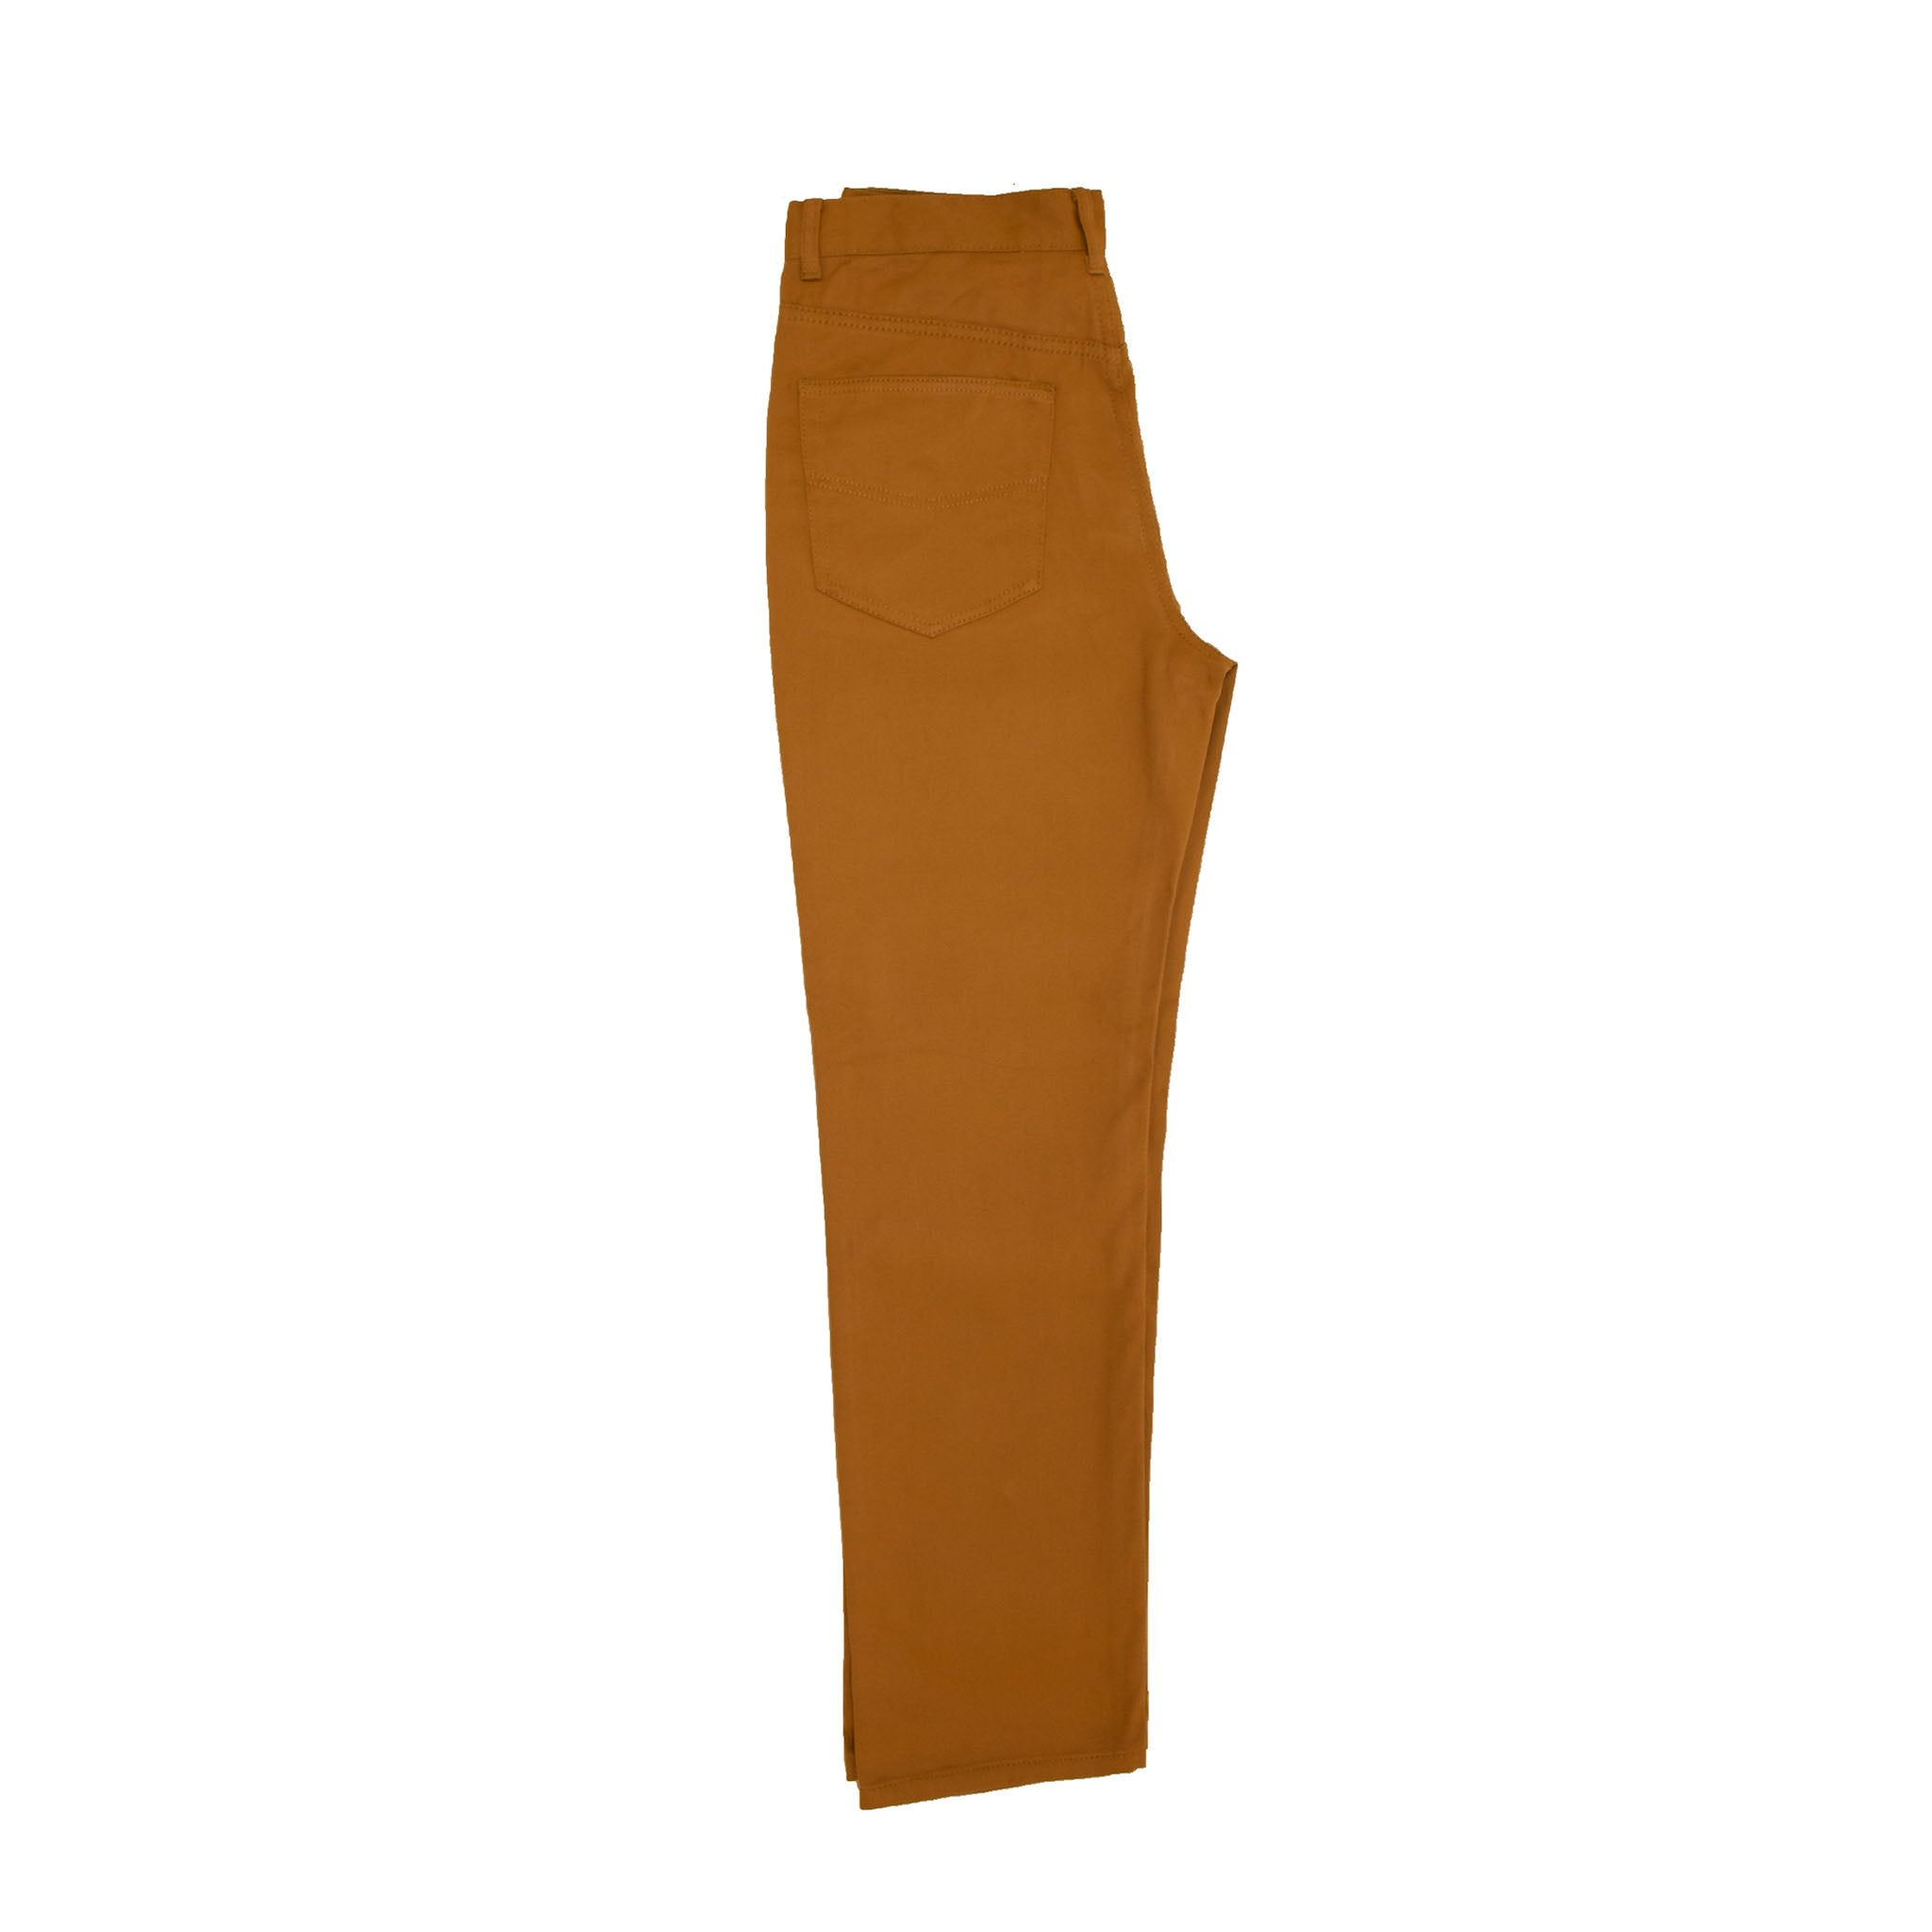 BEYOND THE LIMIT JEANS WHEAT